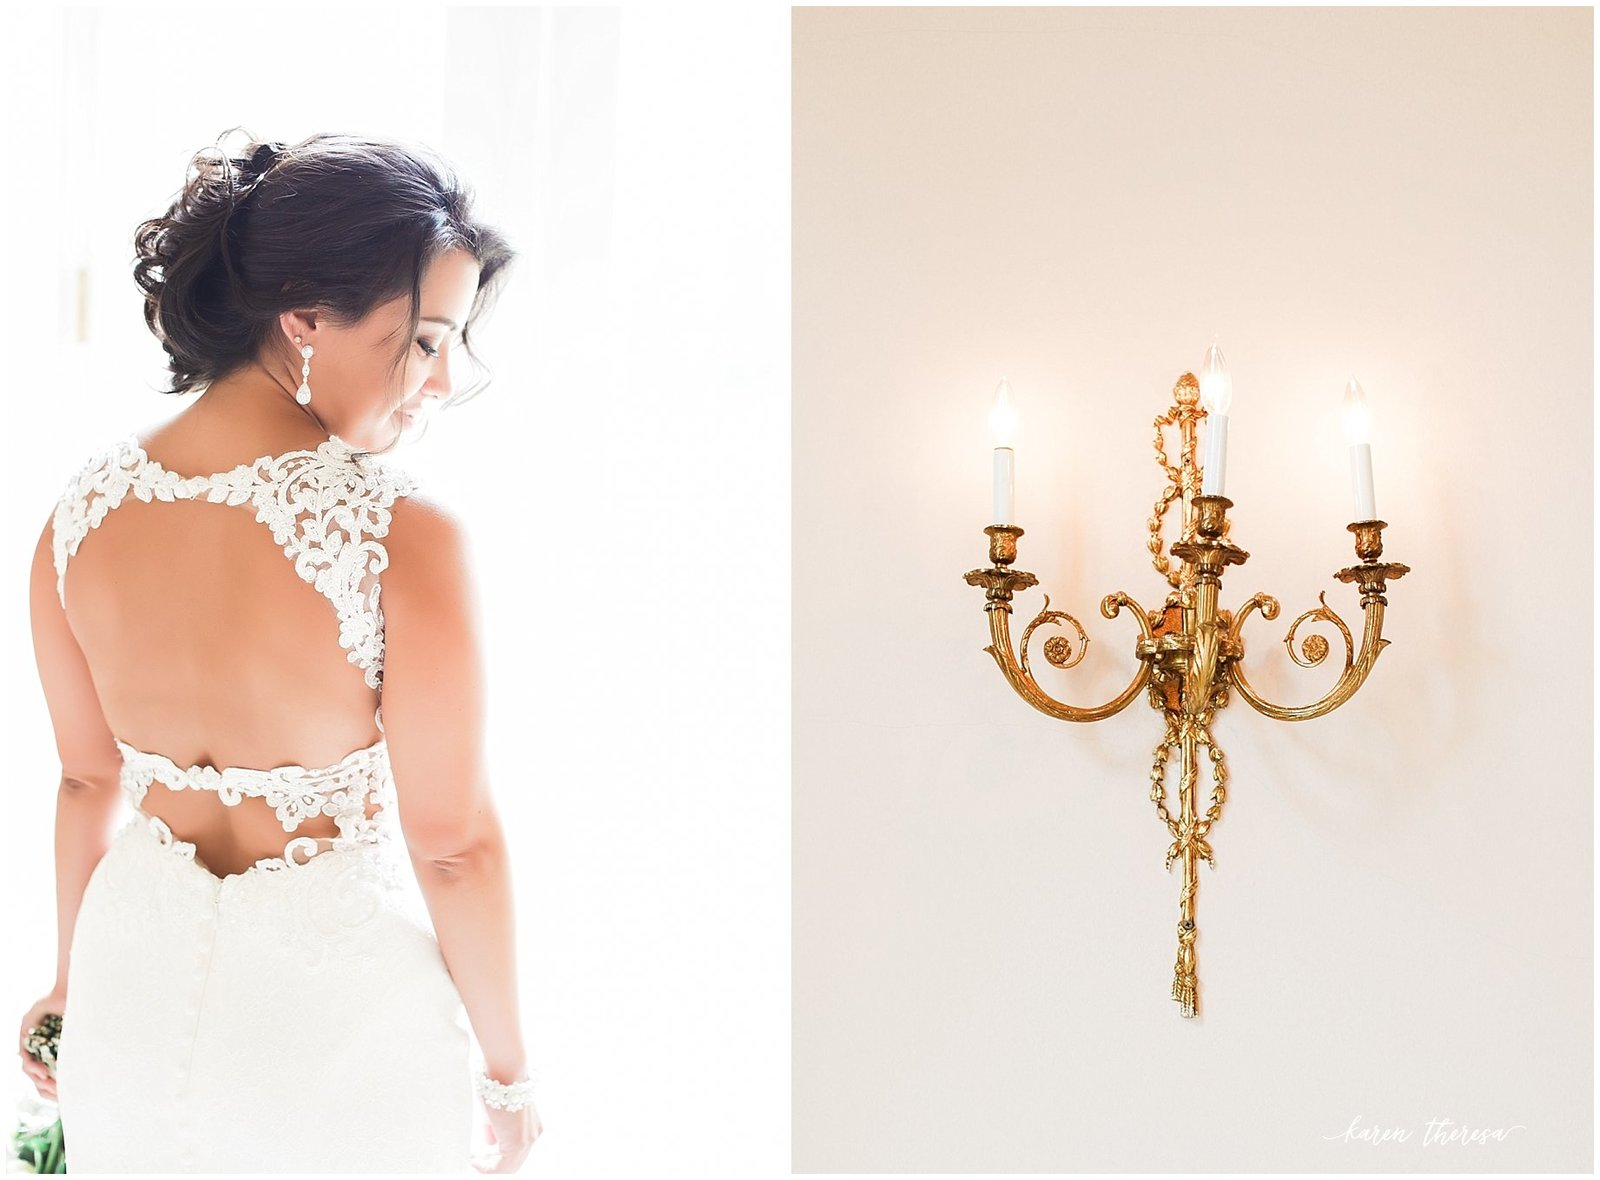 Chateau Cocomar-beautiful bridal photography-karen theresa photography_0795